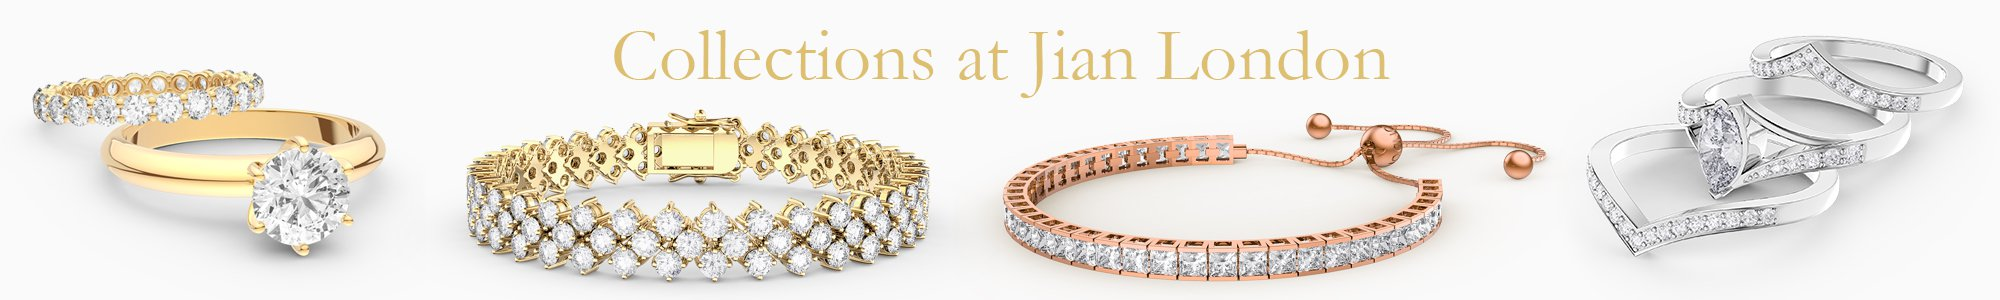 Jewelry Collections for everyone - from precious gemstones to Diamonds. From Silver to 18K Gold.